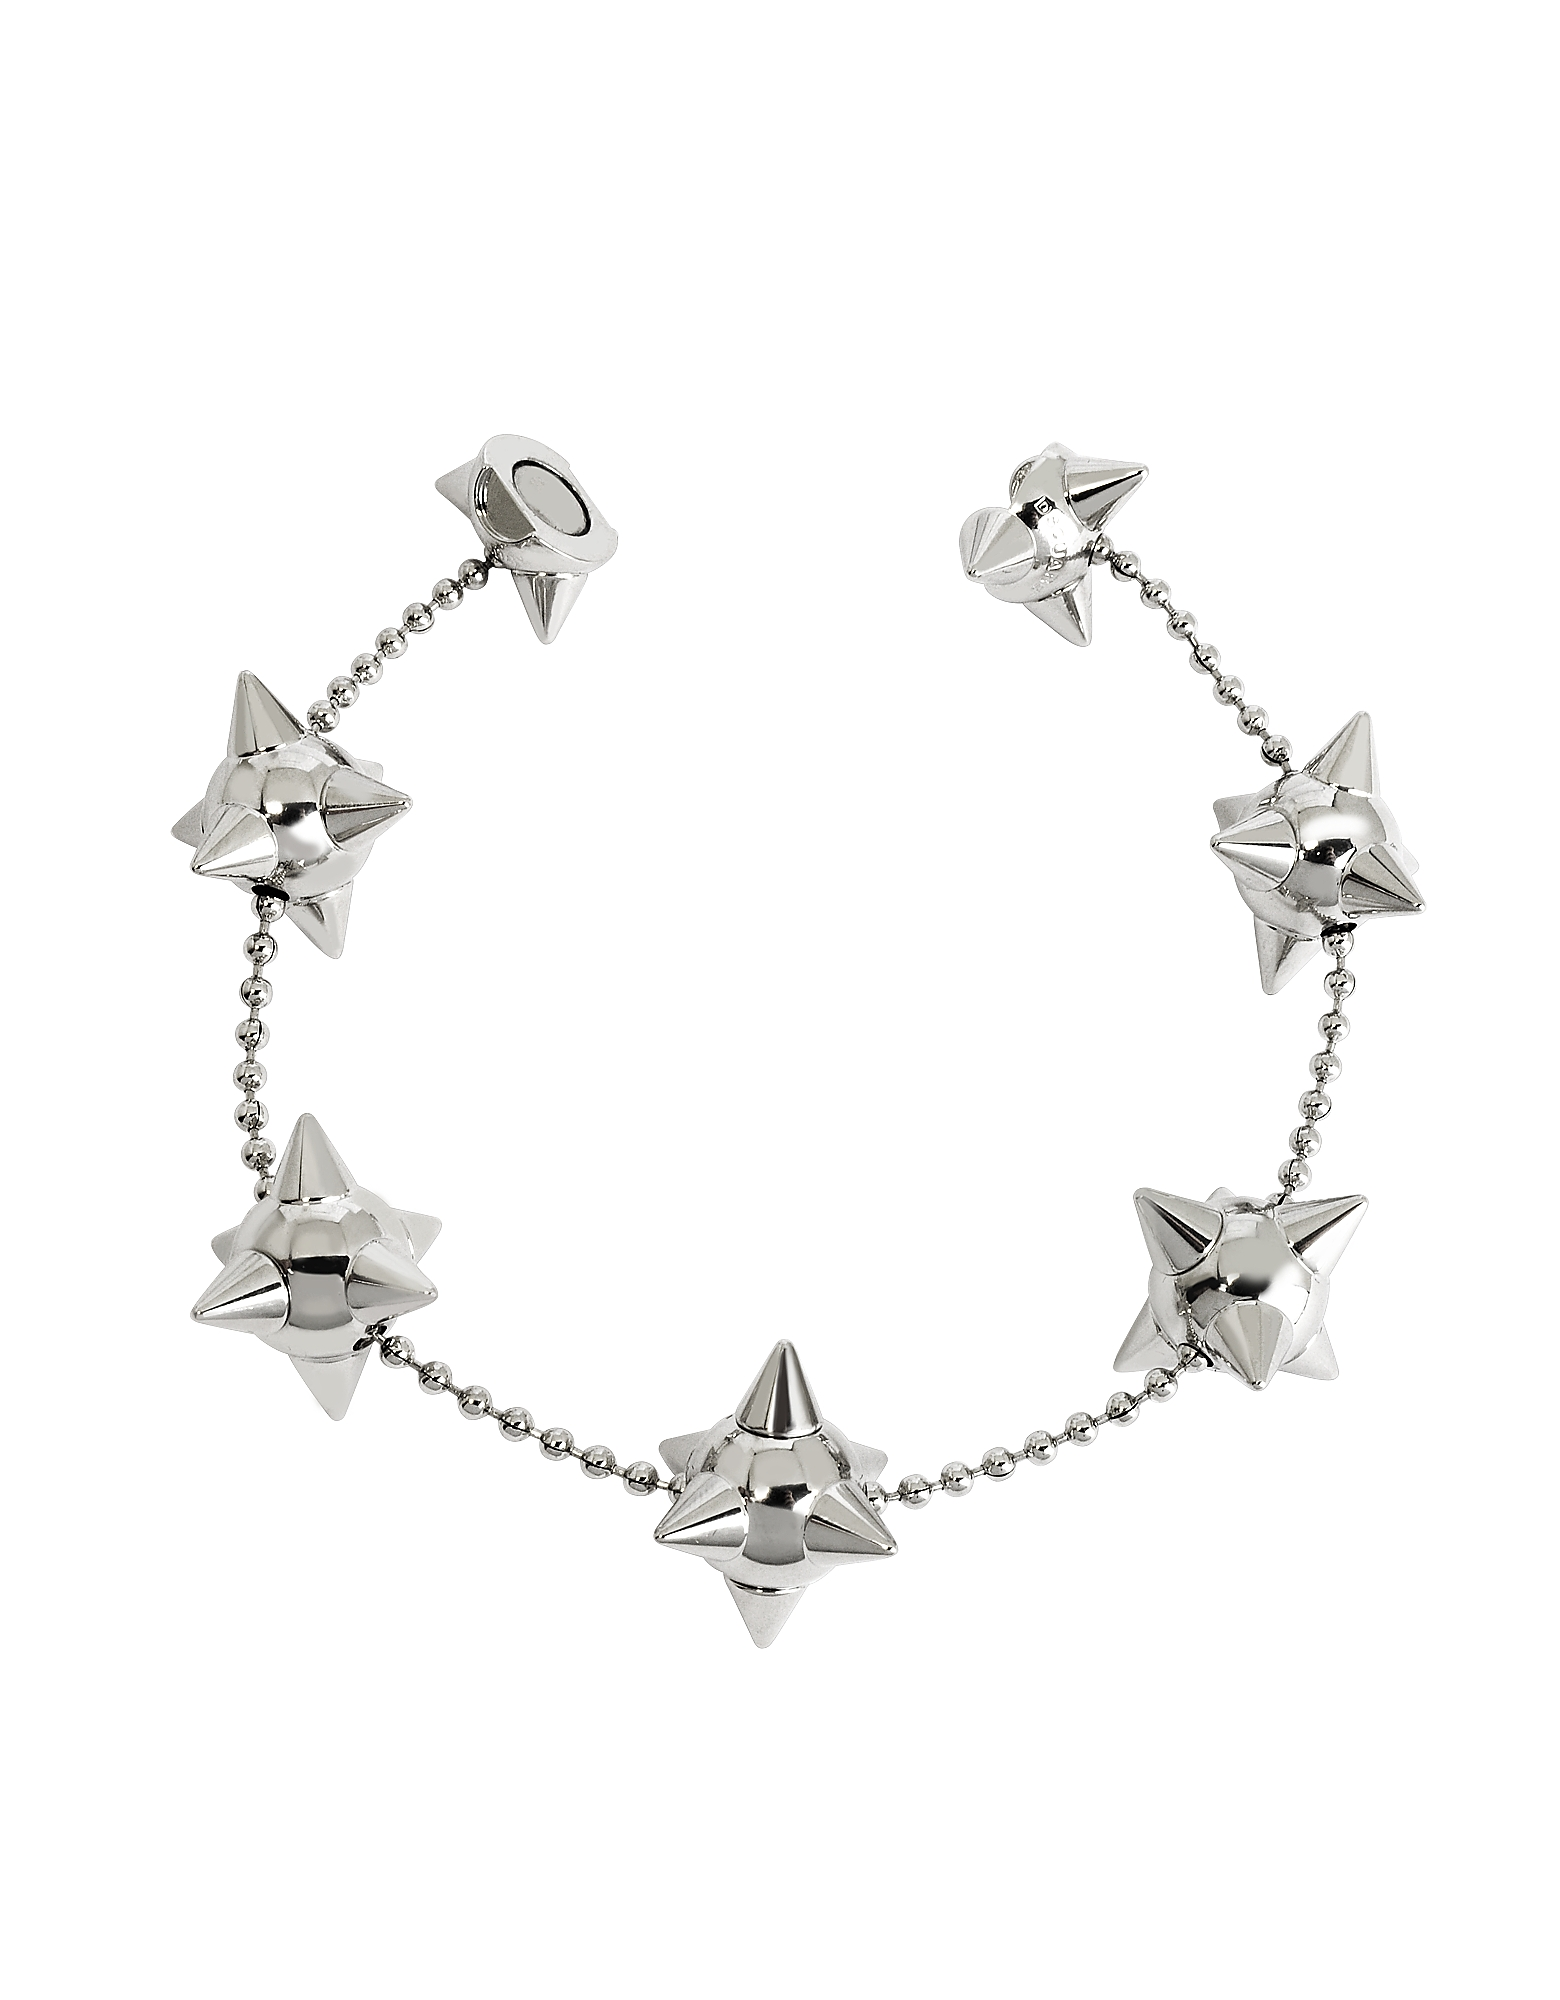 DSquared2 Designer Bracelets, Pierce Me Palladium Plated Metal Spiked Chain Armlet